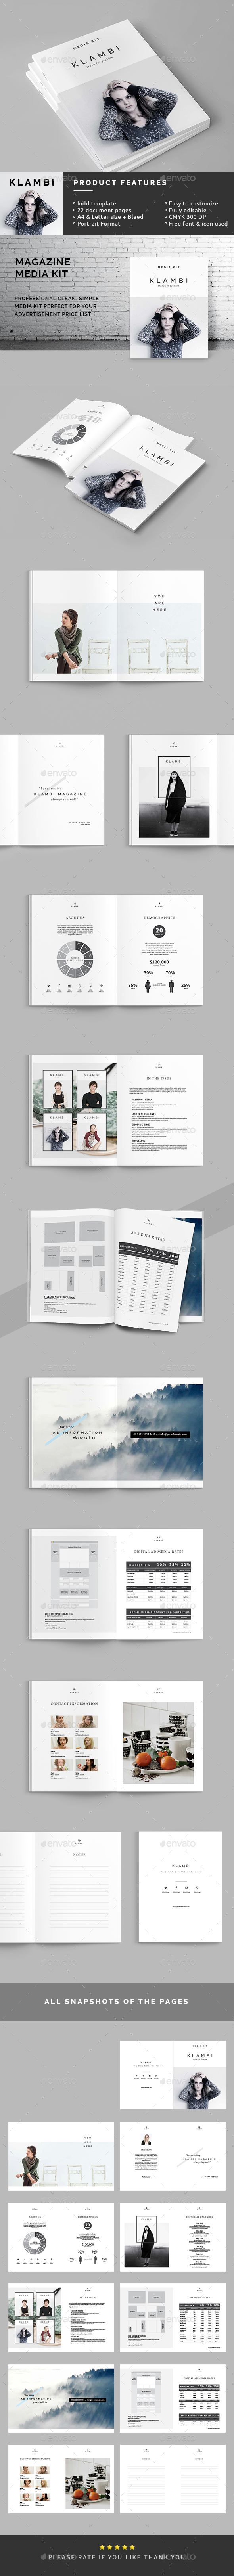 Magazine media kit by boxkayu graphicriver magazine media kit magazines print templates pronofoot35fo Image collections